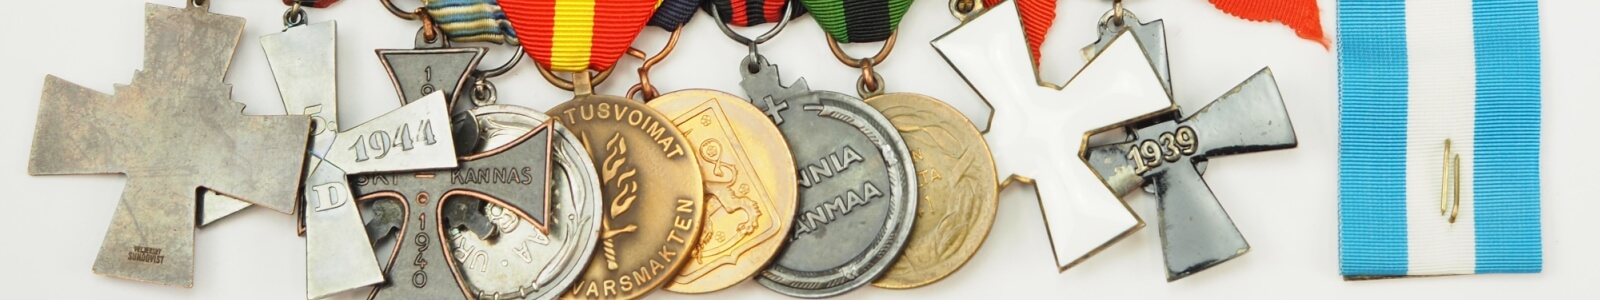 Auction 23: Medals and badges of honor